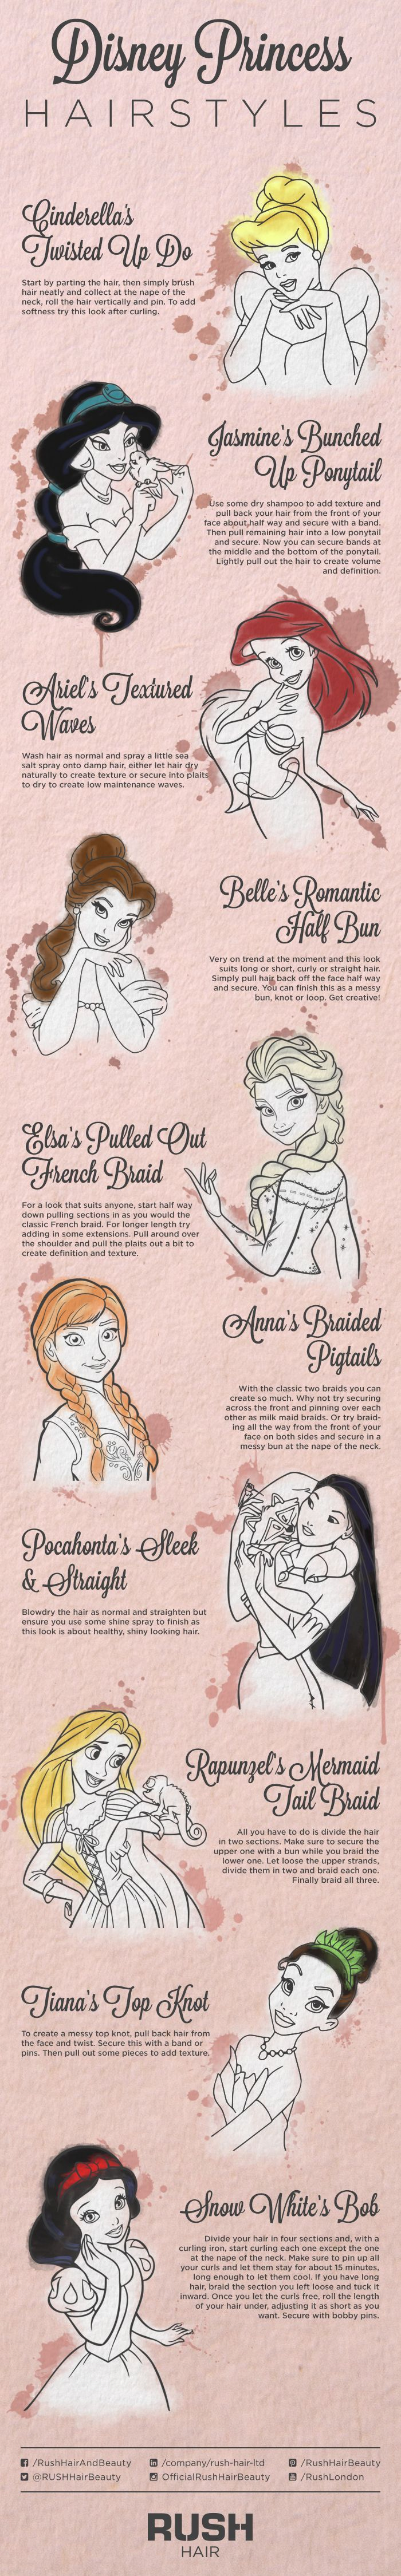 10 beautiful hairstyles to unleash your inner Disney Princess!